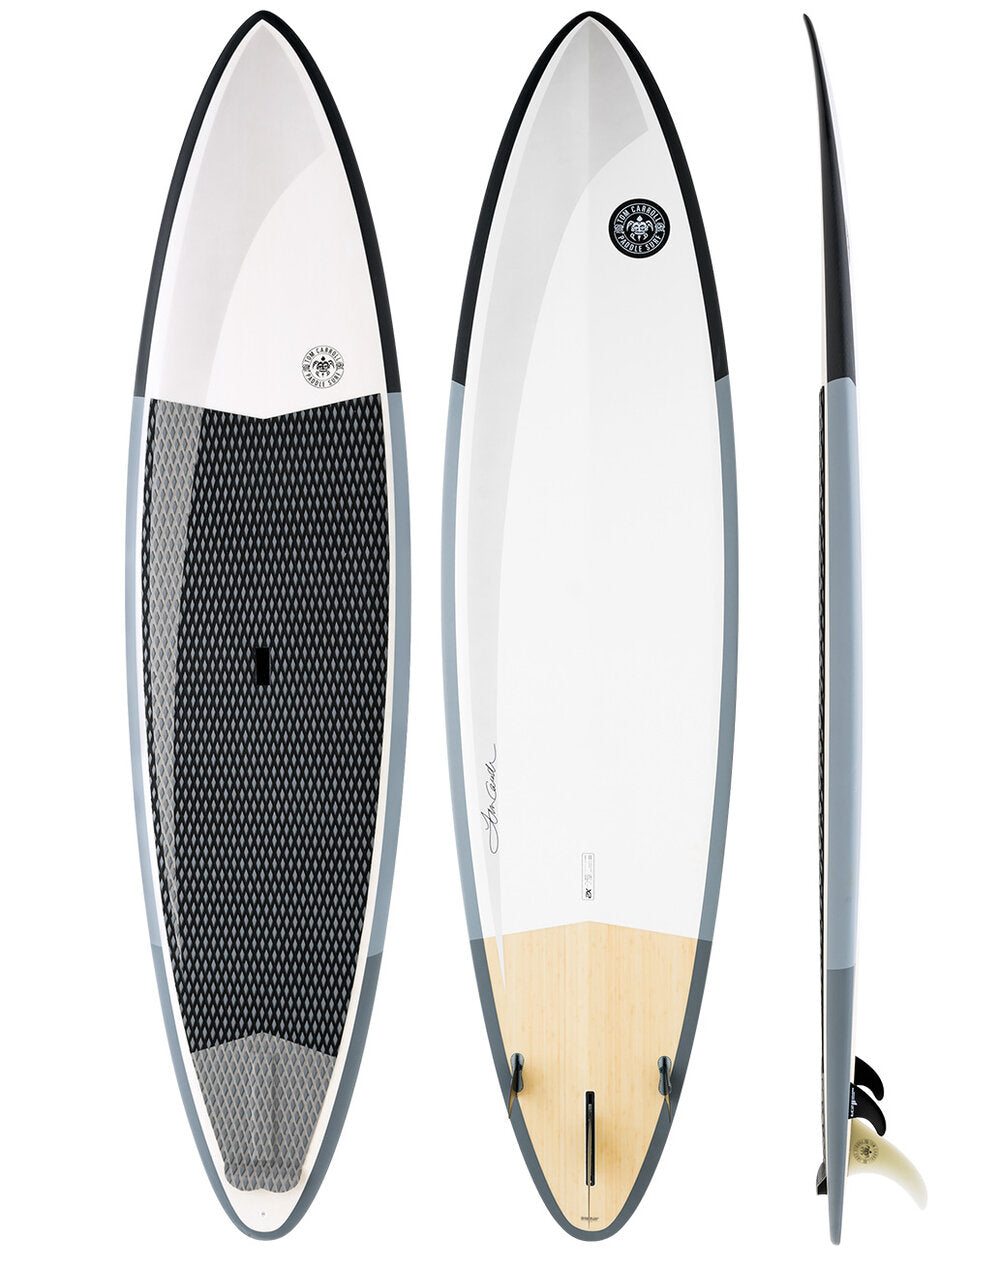 TOM CARROLL PADDLE SURF OUTER REEF 11'6